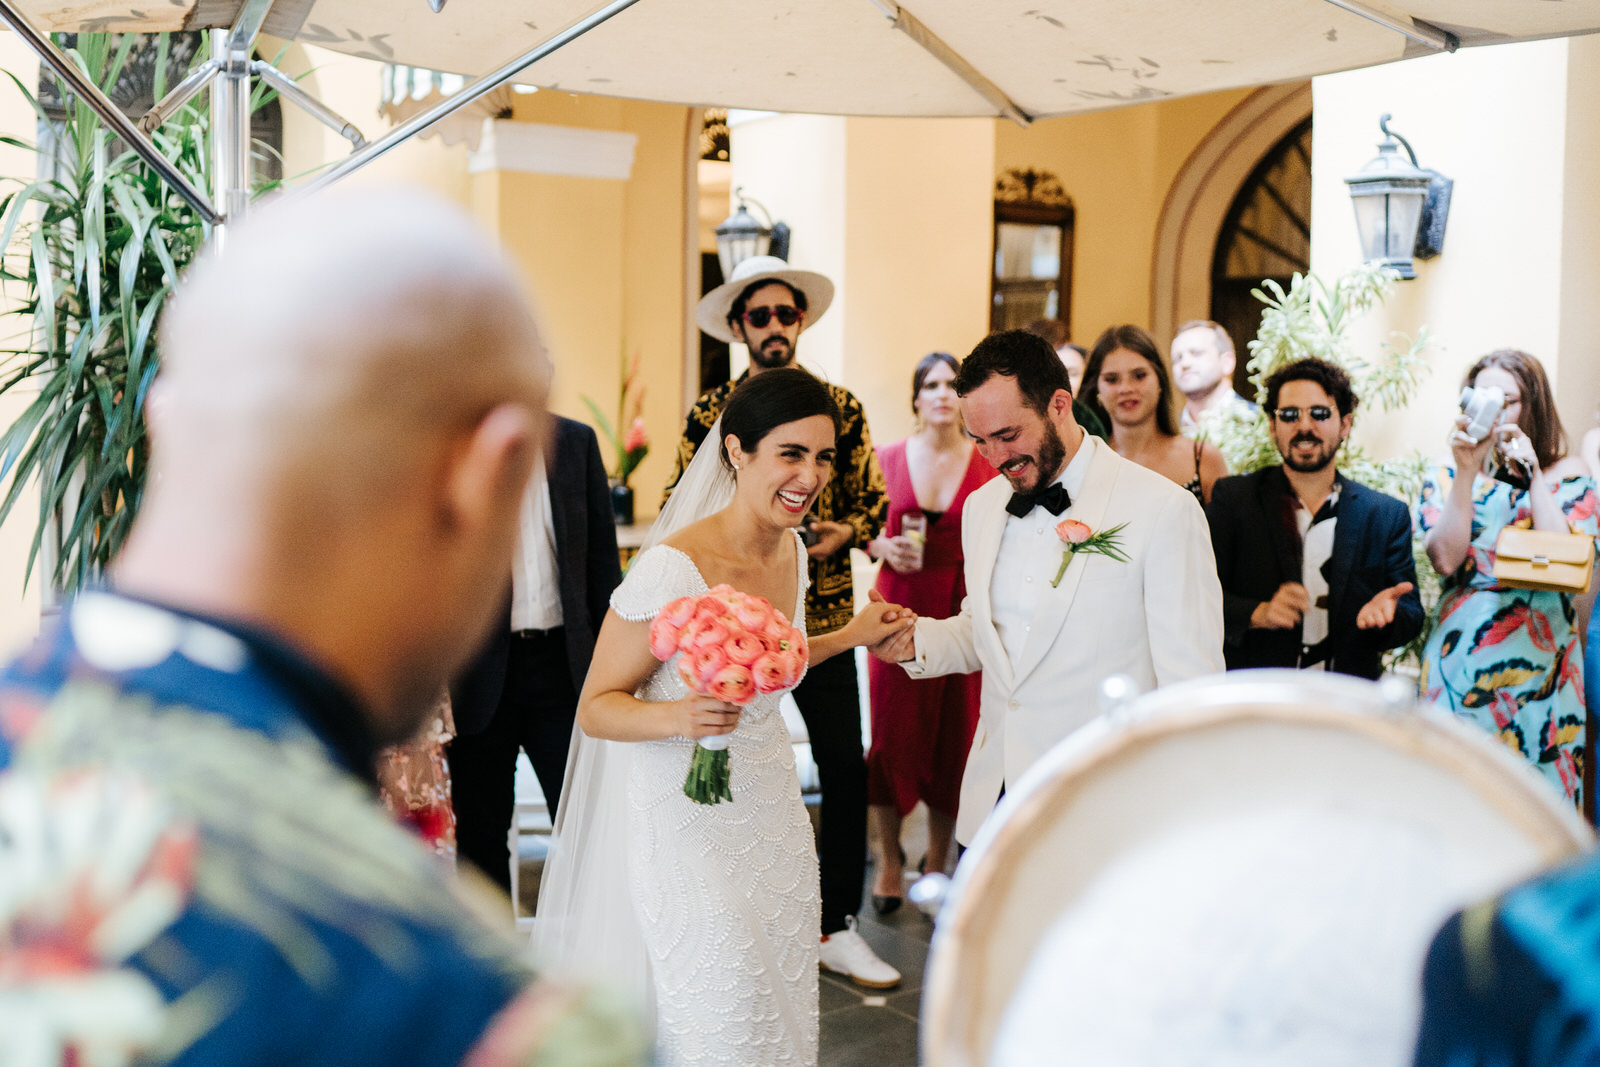 Musicians are playing in the hotel's courtyard as bride and groom hold hands and smile, surrounded by guests